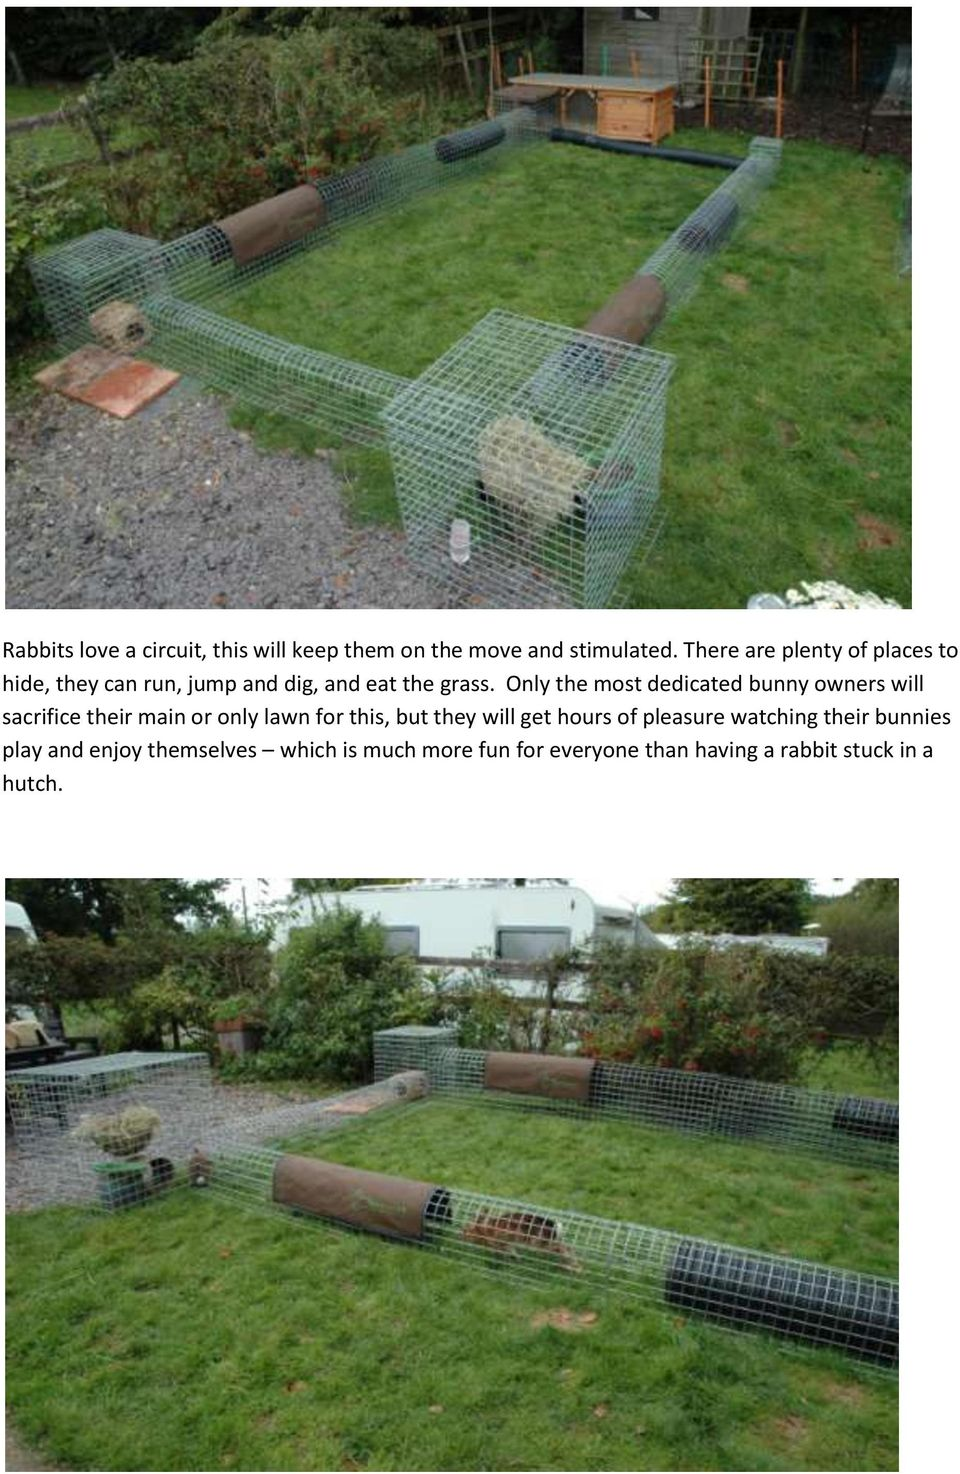 Only the most dedicated bunny owners will sacrifice their main or only lawn for this, but they will